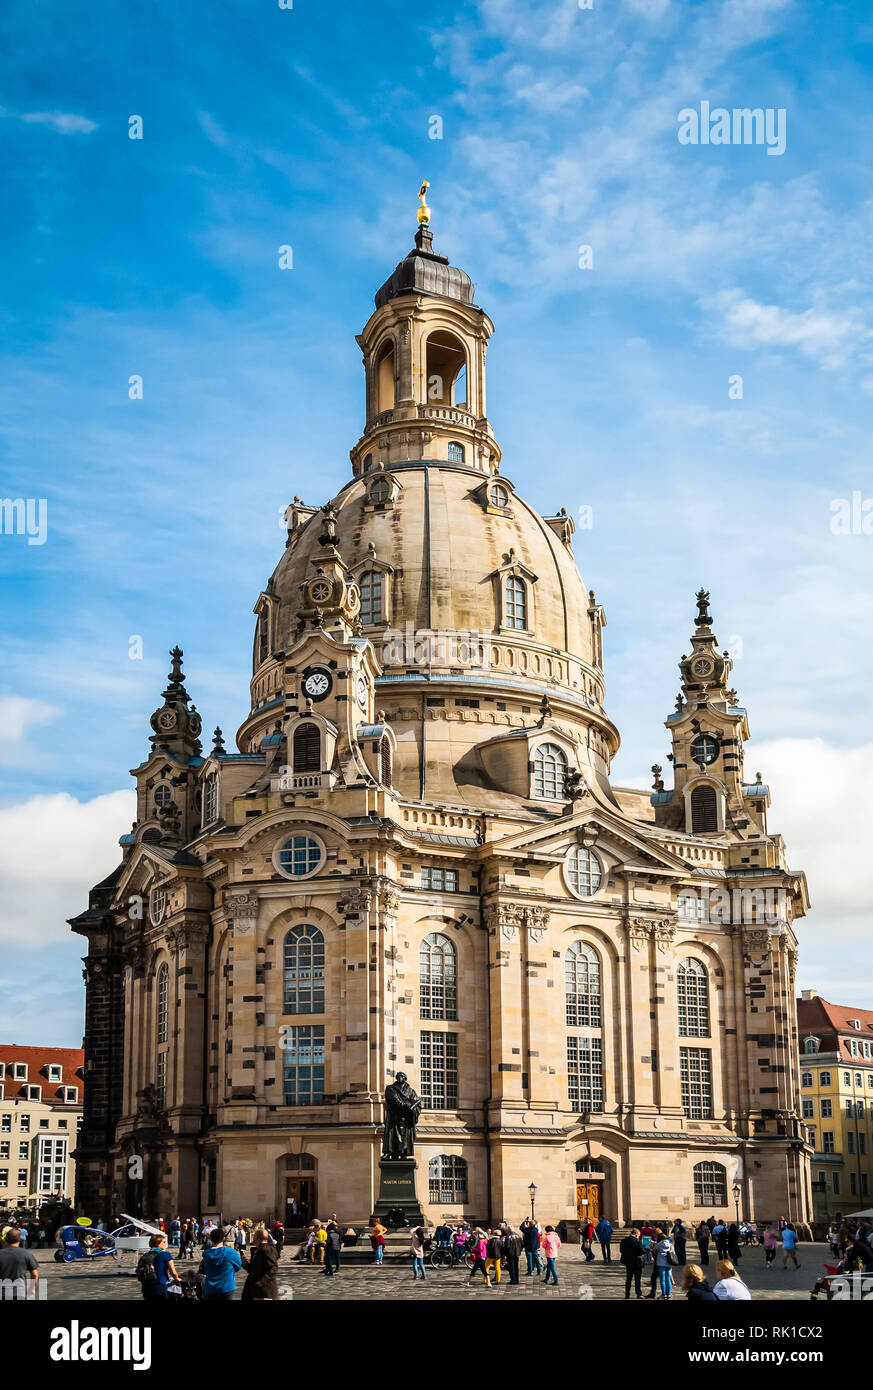 Frauenkirche (Our Lady church) and statue of Martin Luther in the center of old town in Dresden, Germany Stock Photo